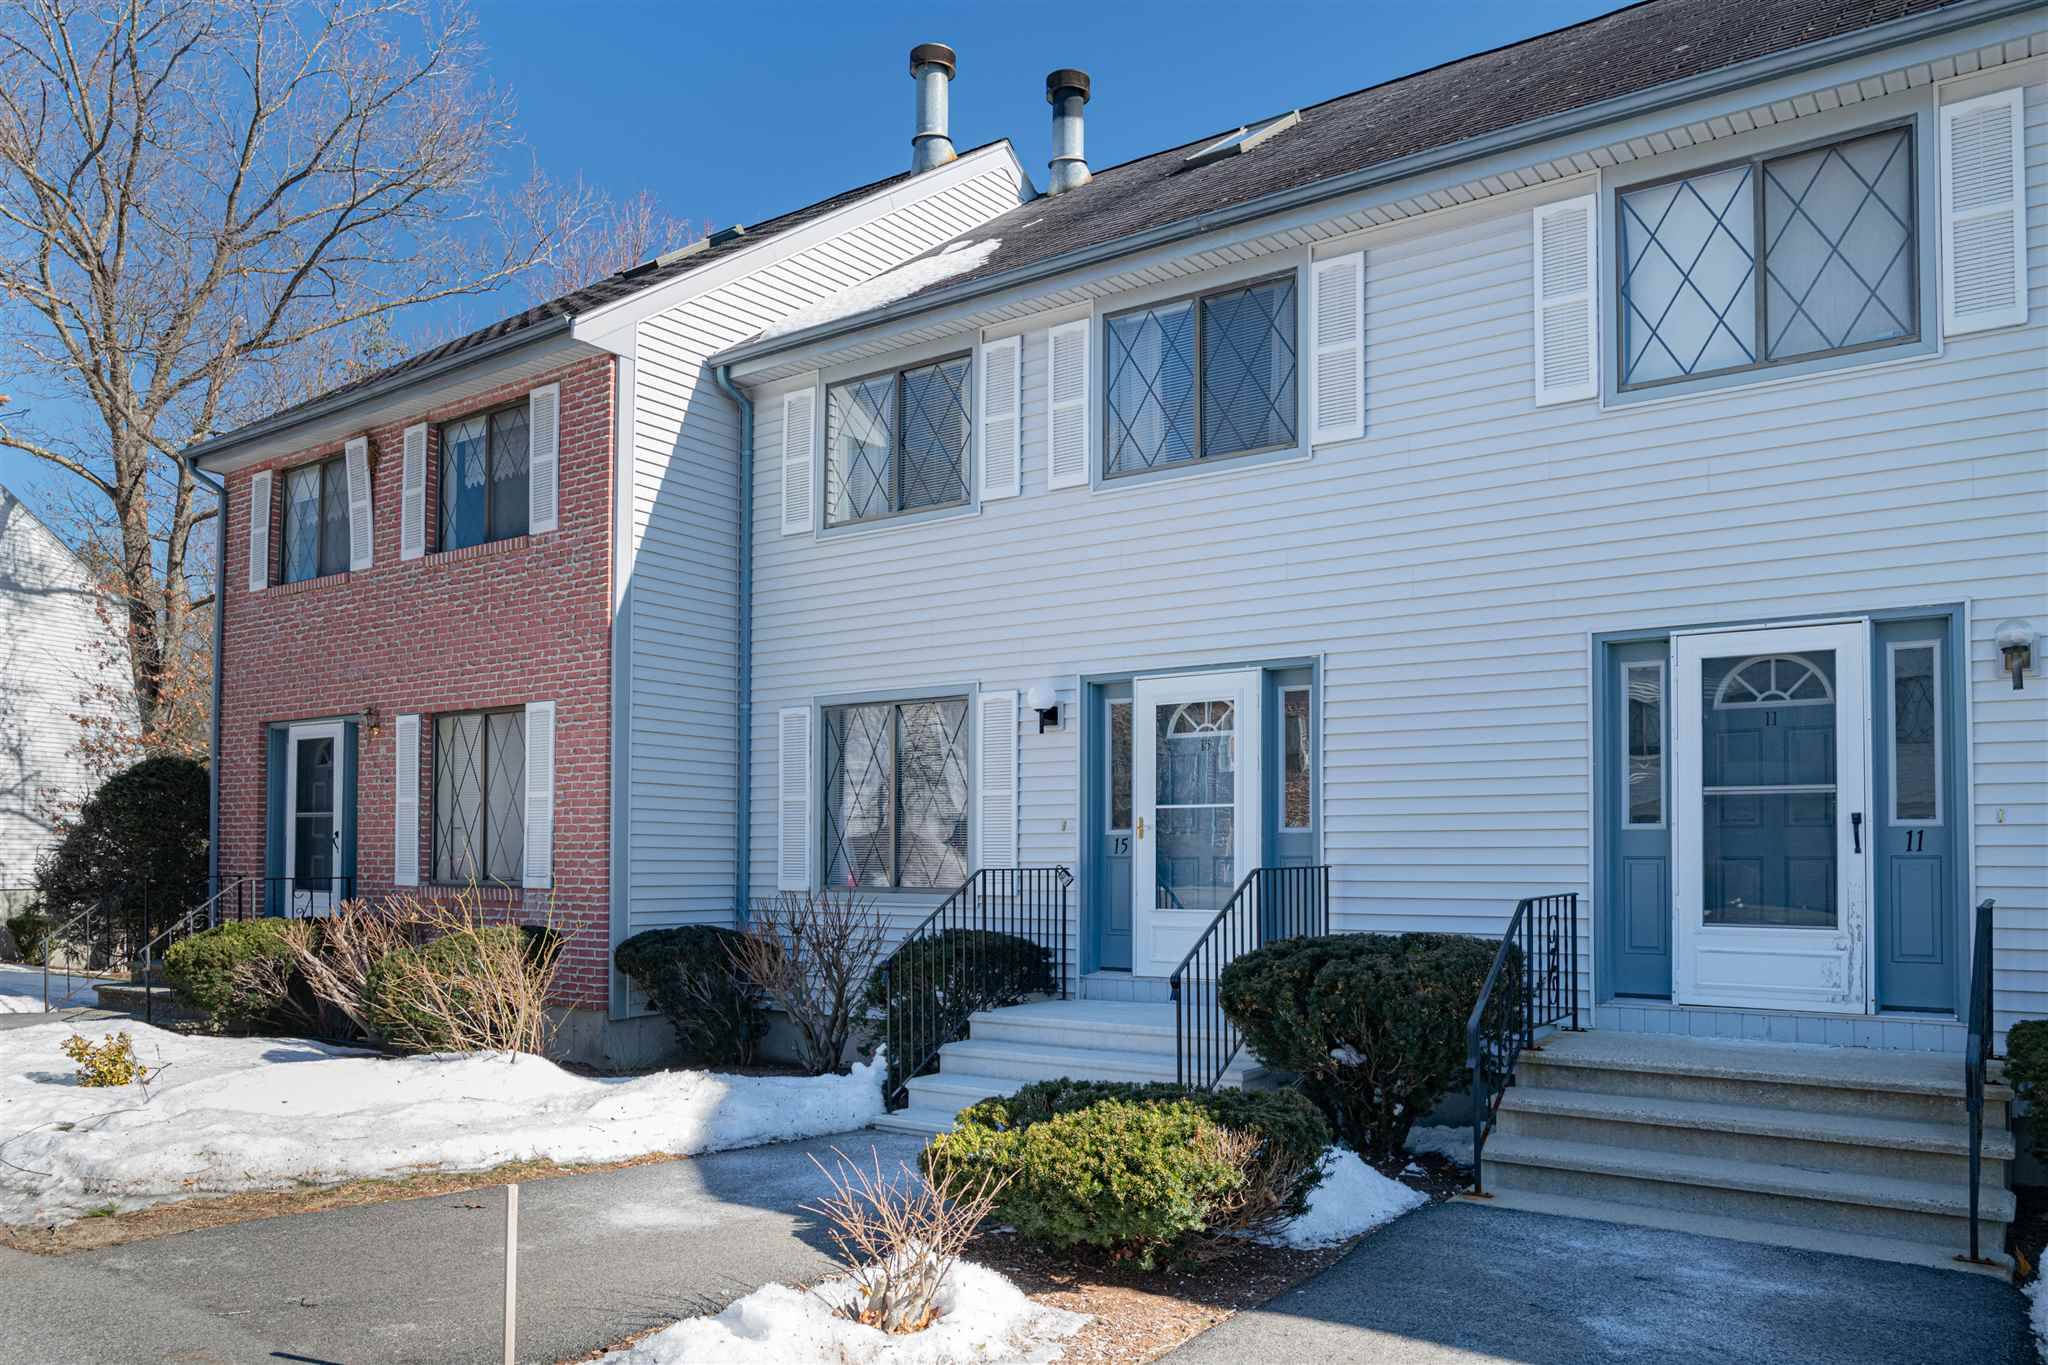 MLS 4849551: 15 Vanden Road-Unit 15, Merrimack NH